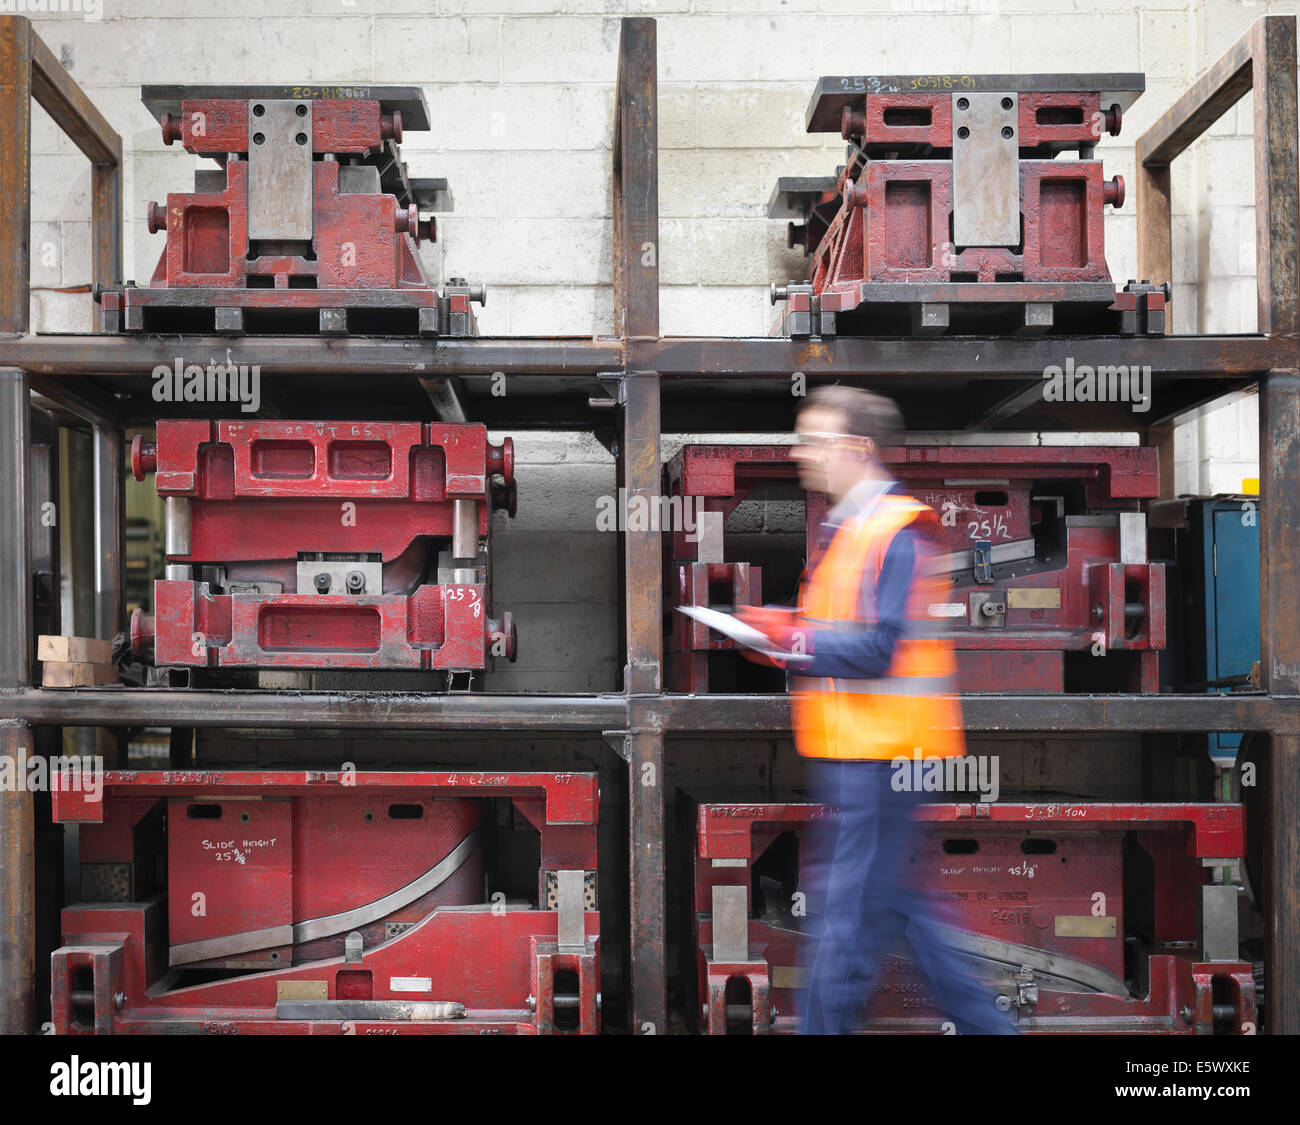 Worker with clipboard walking past press moulds in sheet metal factory - Stock Image